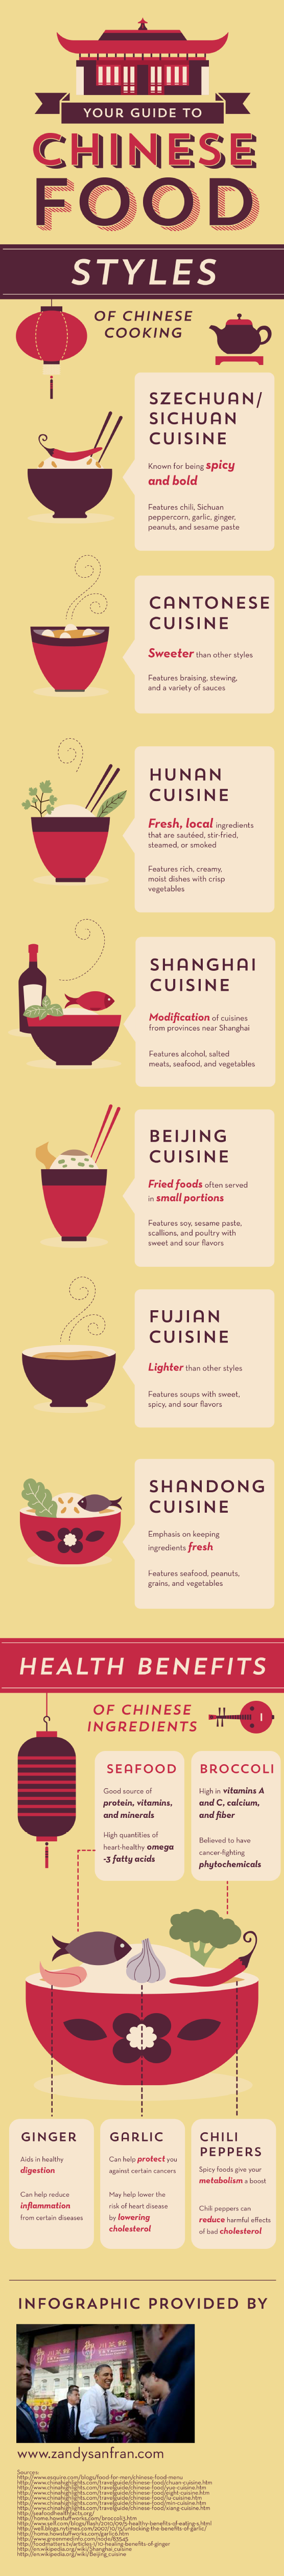 your-guide-to-chinese-food